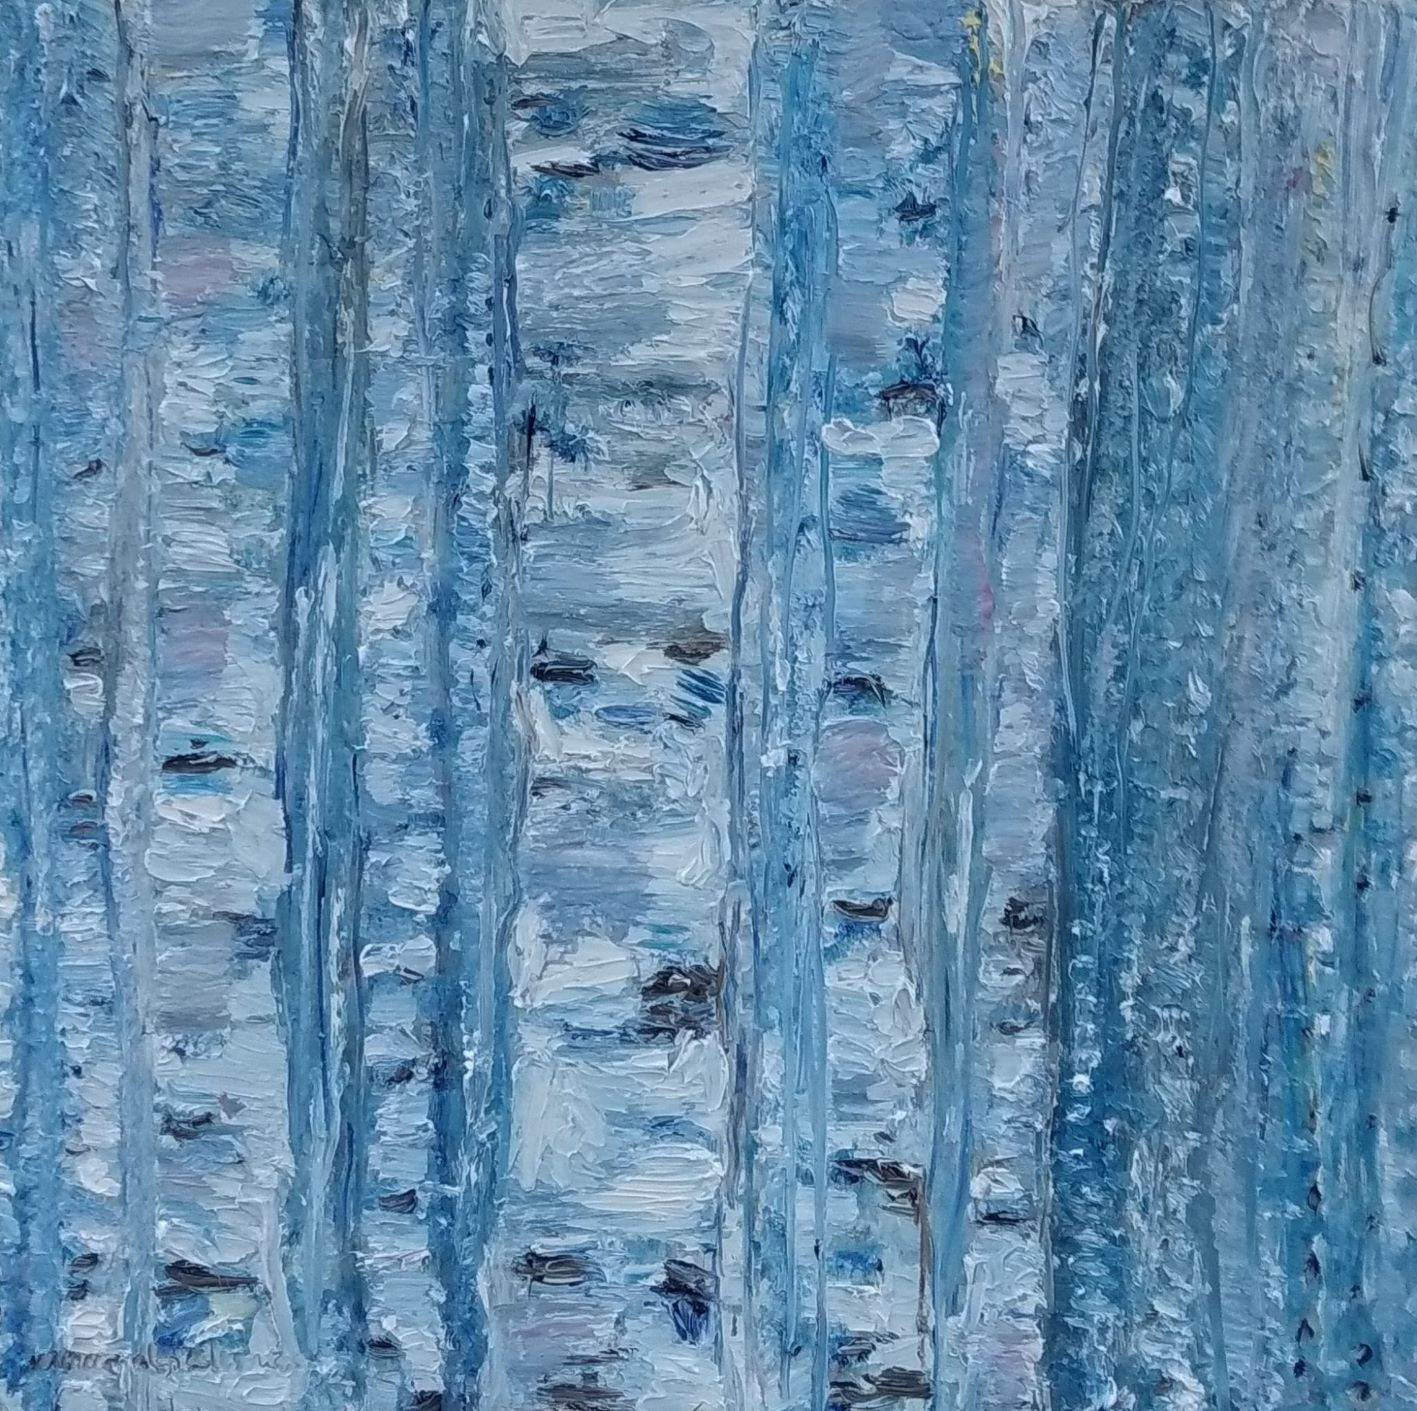 Blue birches II_VeronicaAlonsodelosRios.